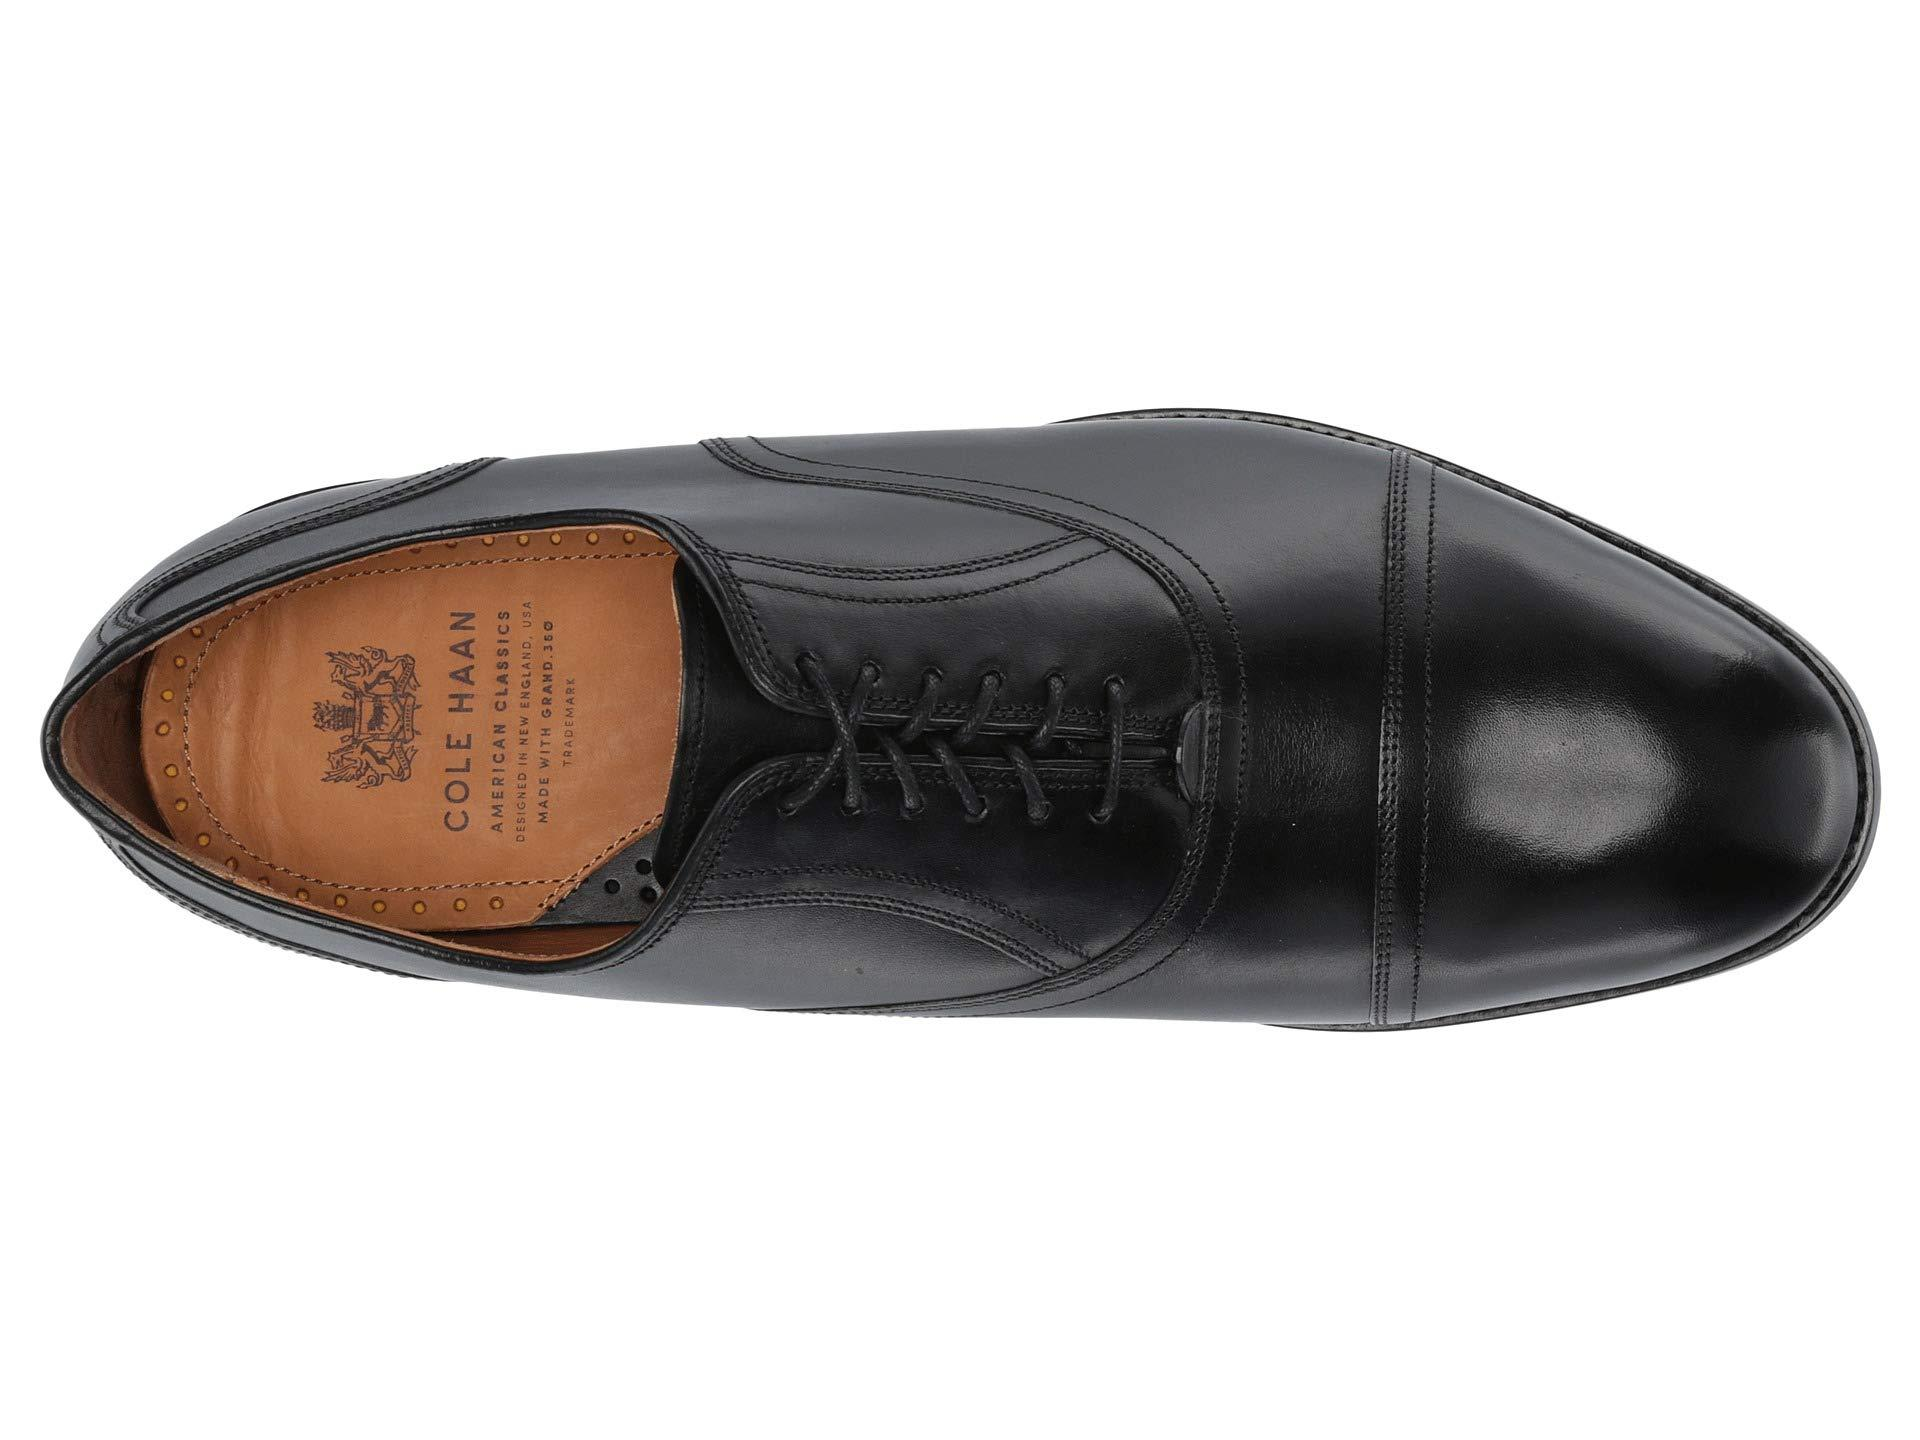 f8b680e864d64f Cole Haan - Kneeland Plain Cap Toe Oxford (black) Men's Shoes for Men -.  View fullscreen